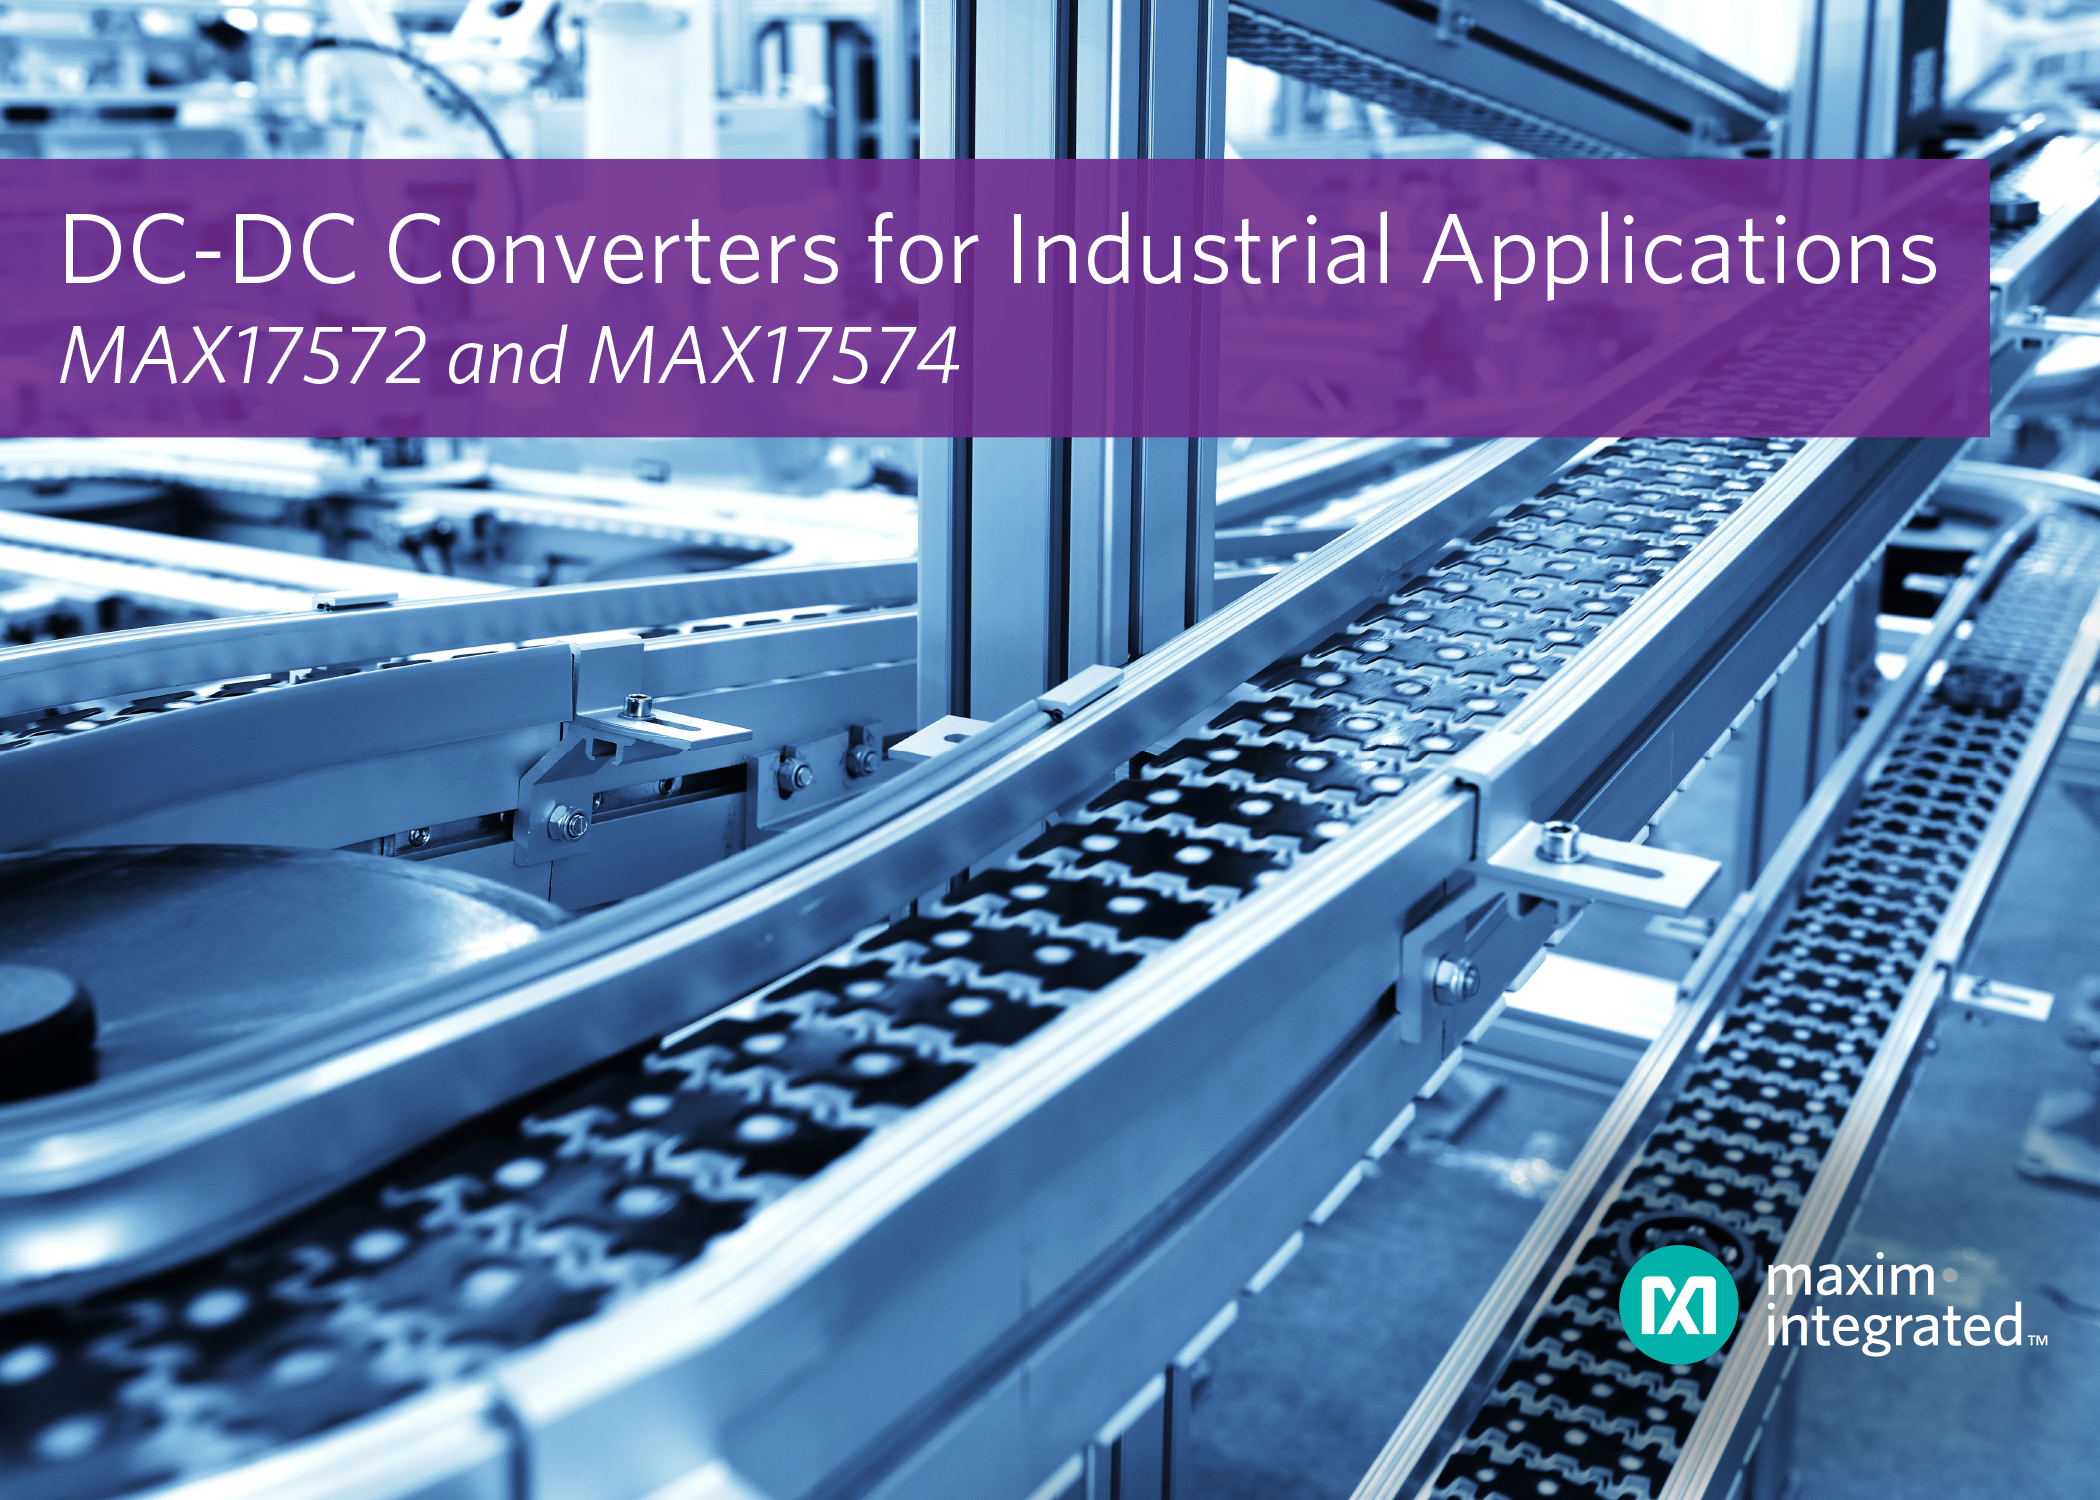 Himalaya Step-Down DC-DC Converters Enable Rapid Compliance of Safety Standards for Industrial Applications